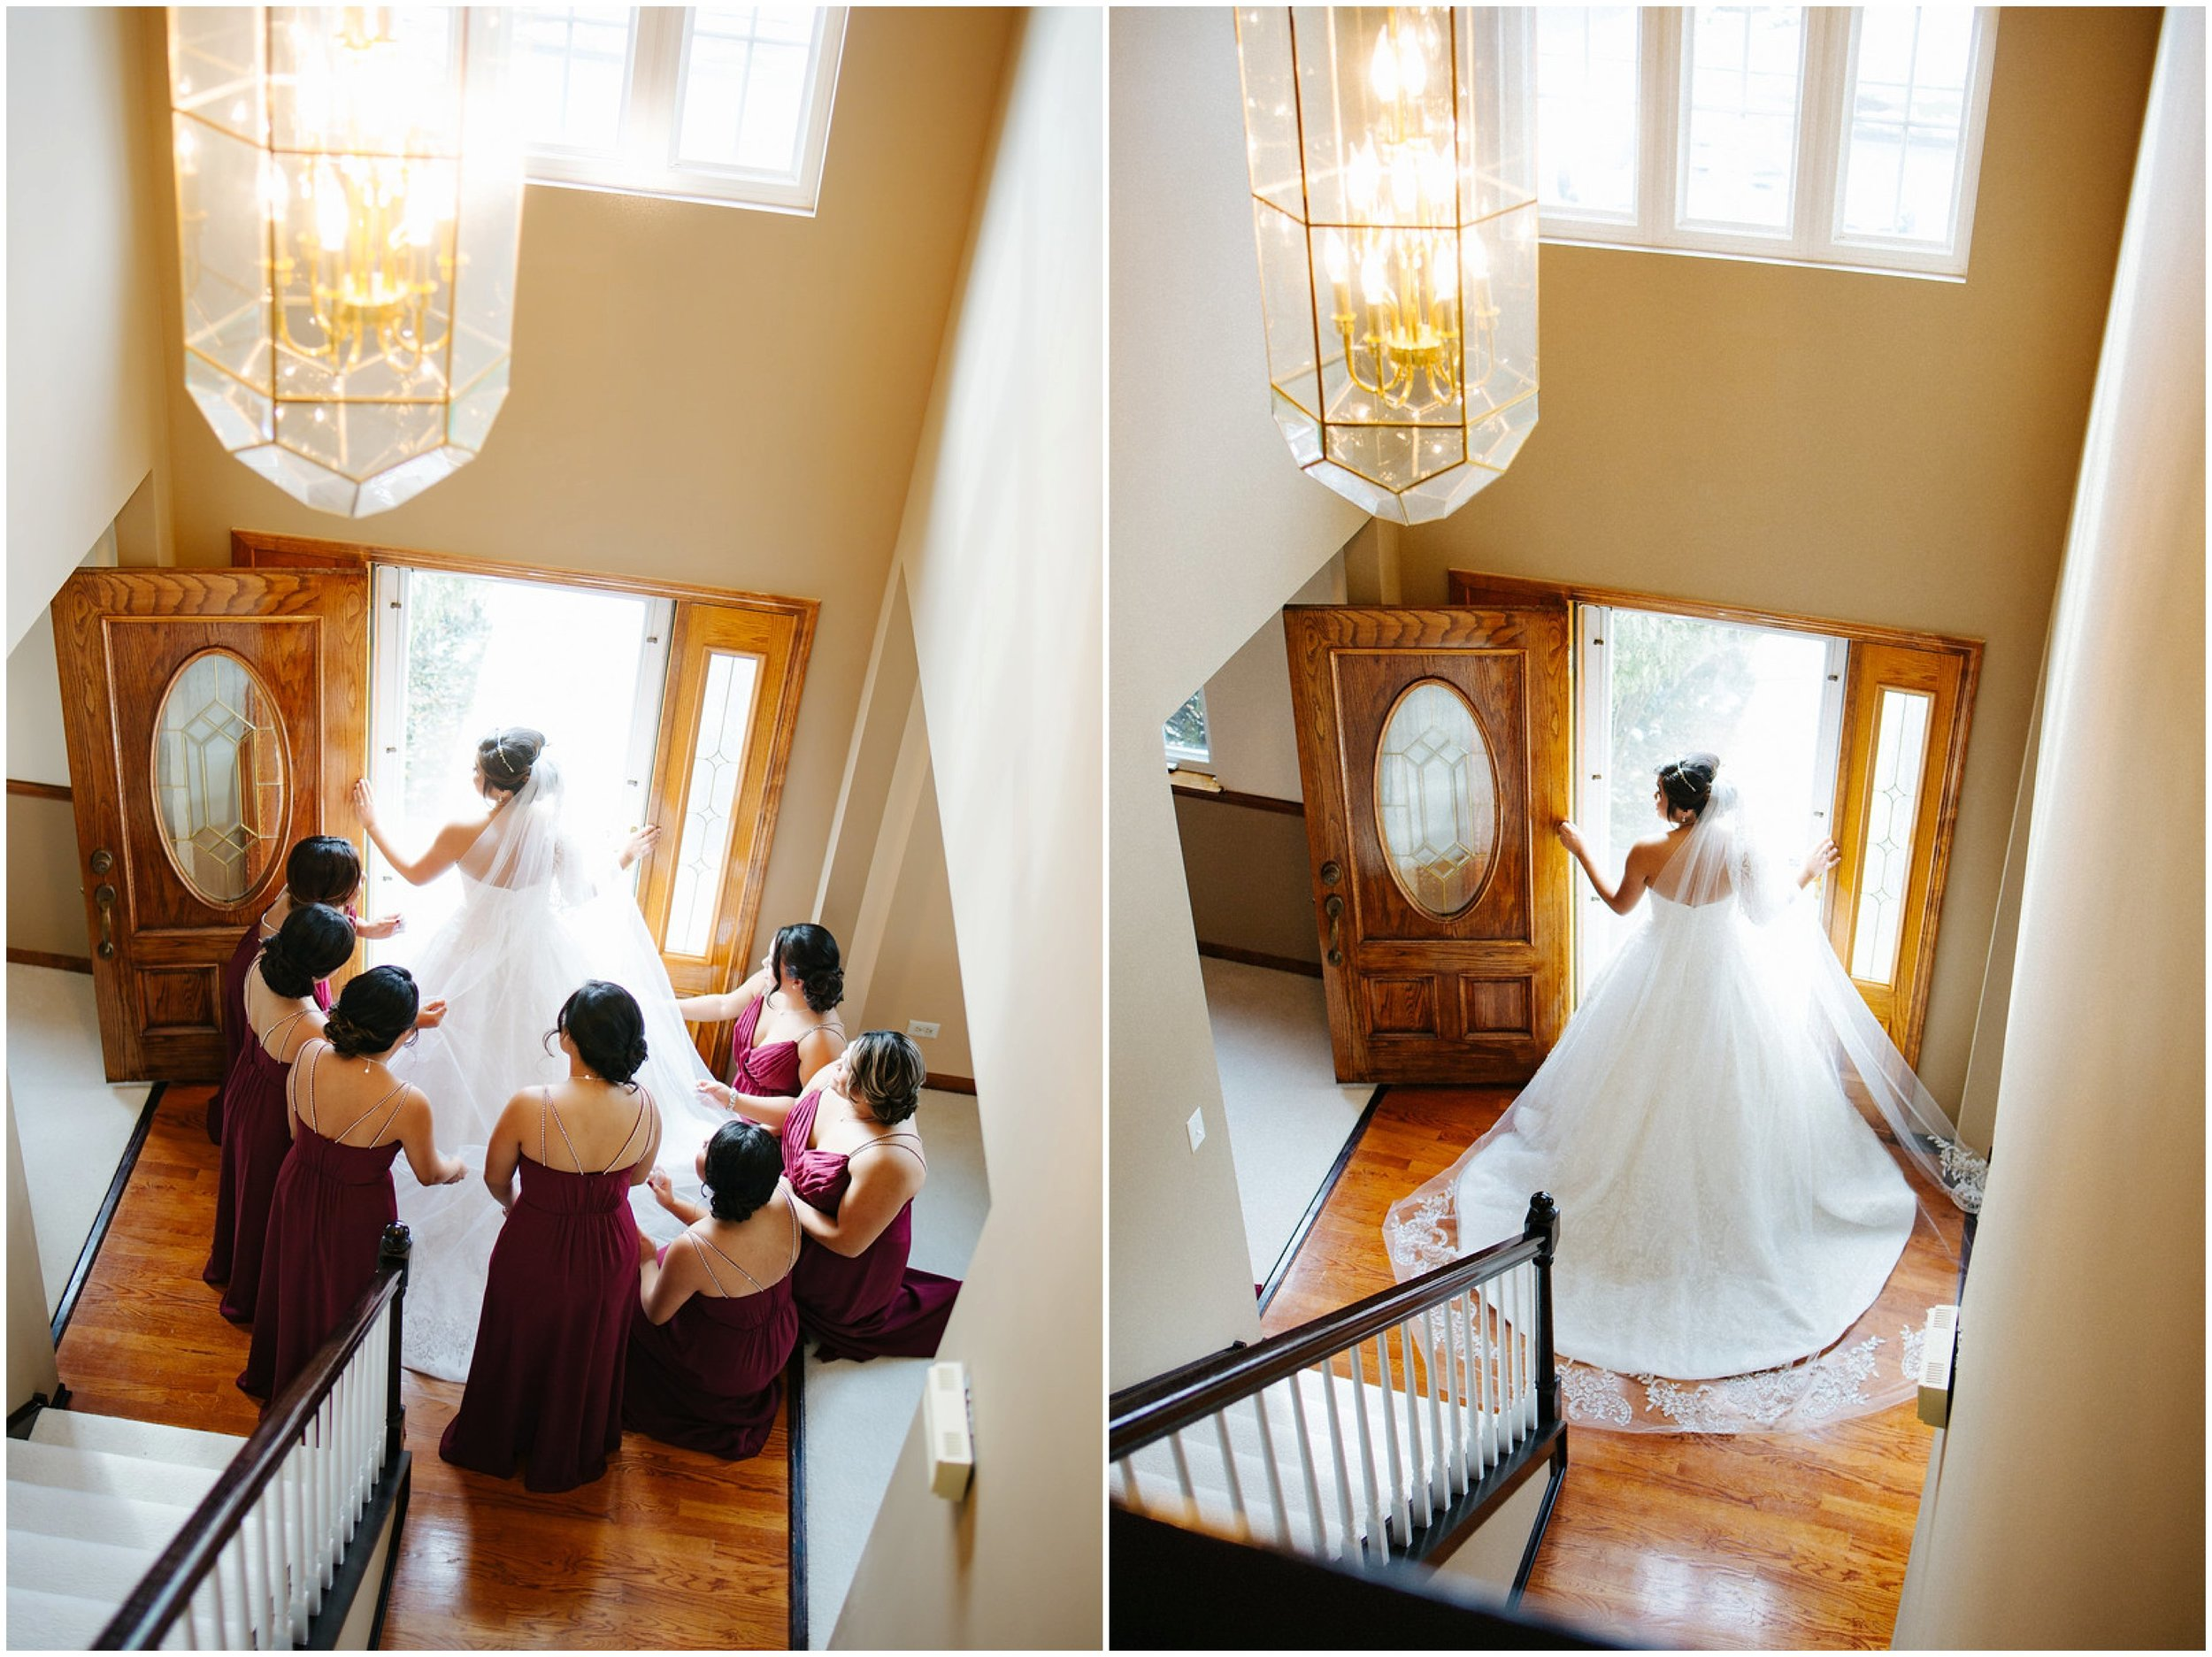 Le Cape Weddings- Chicago Wedding - Ryma and Eejay_-101-X3_LuxuryDestinationPhotographer.jpg